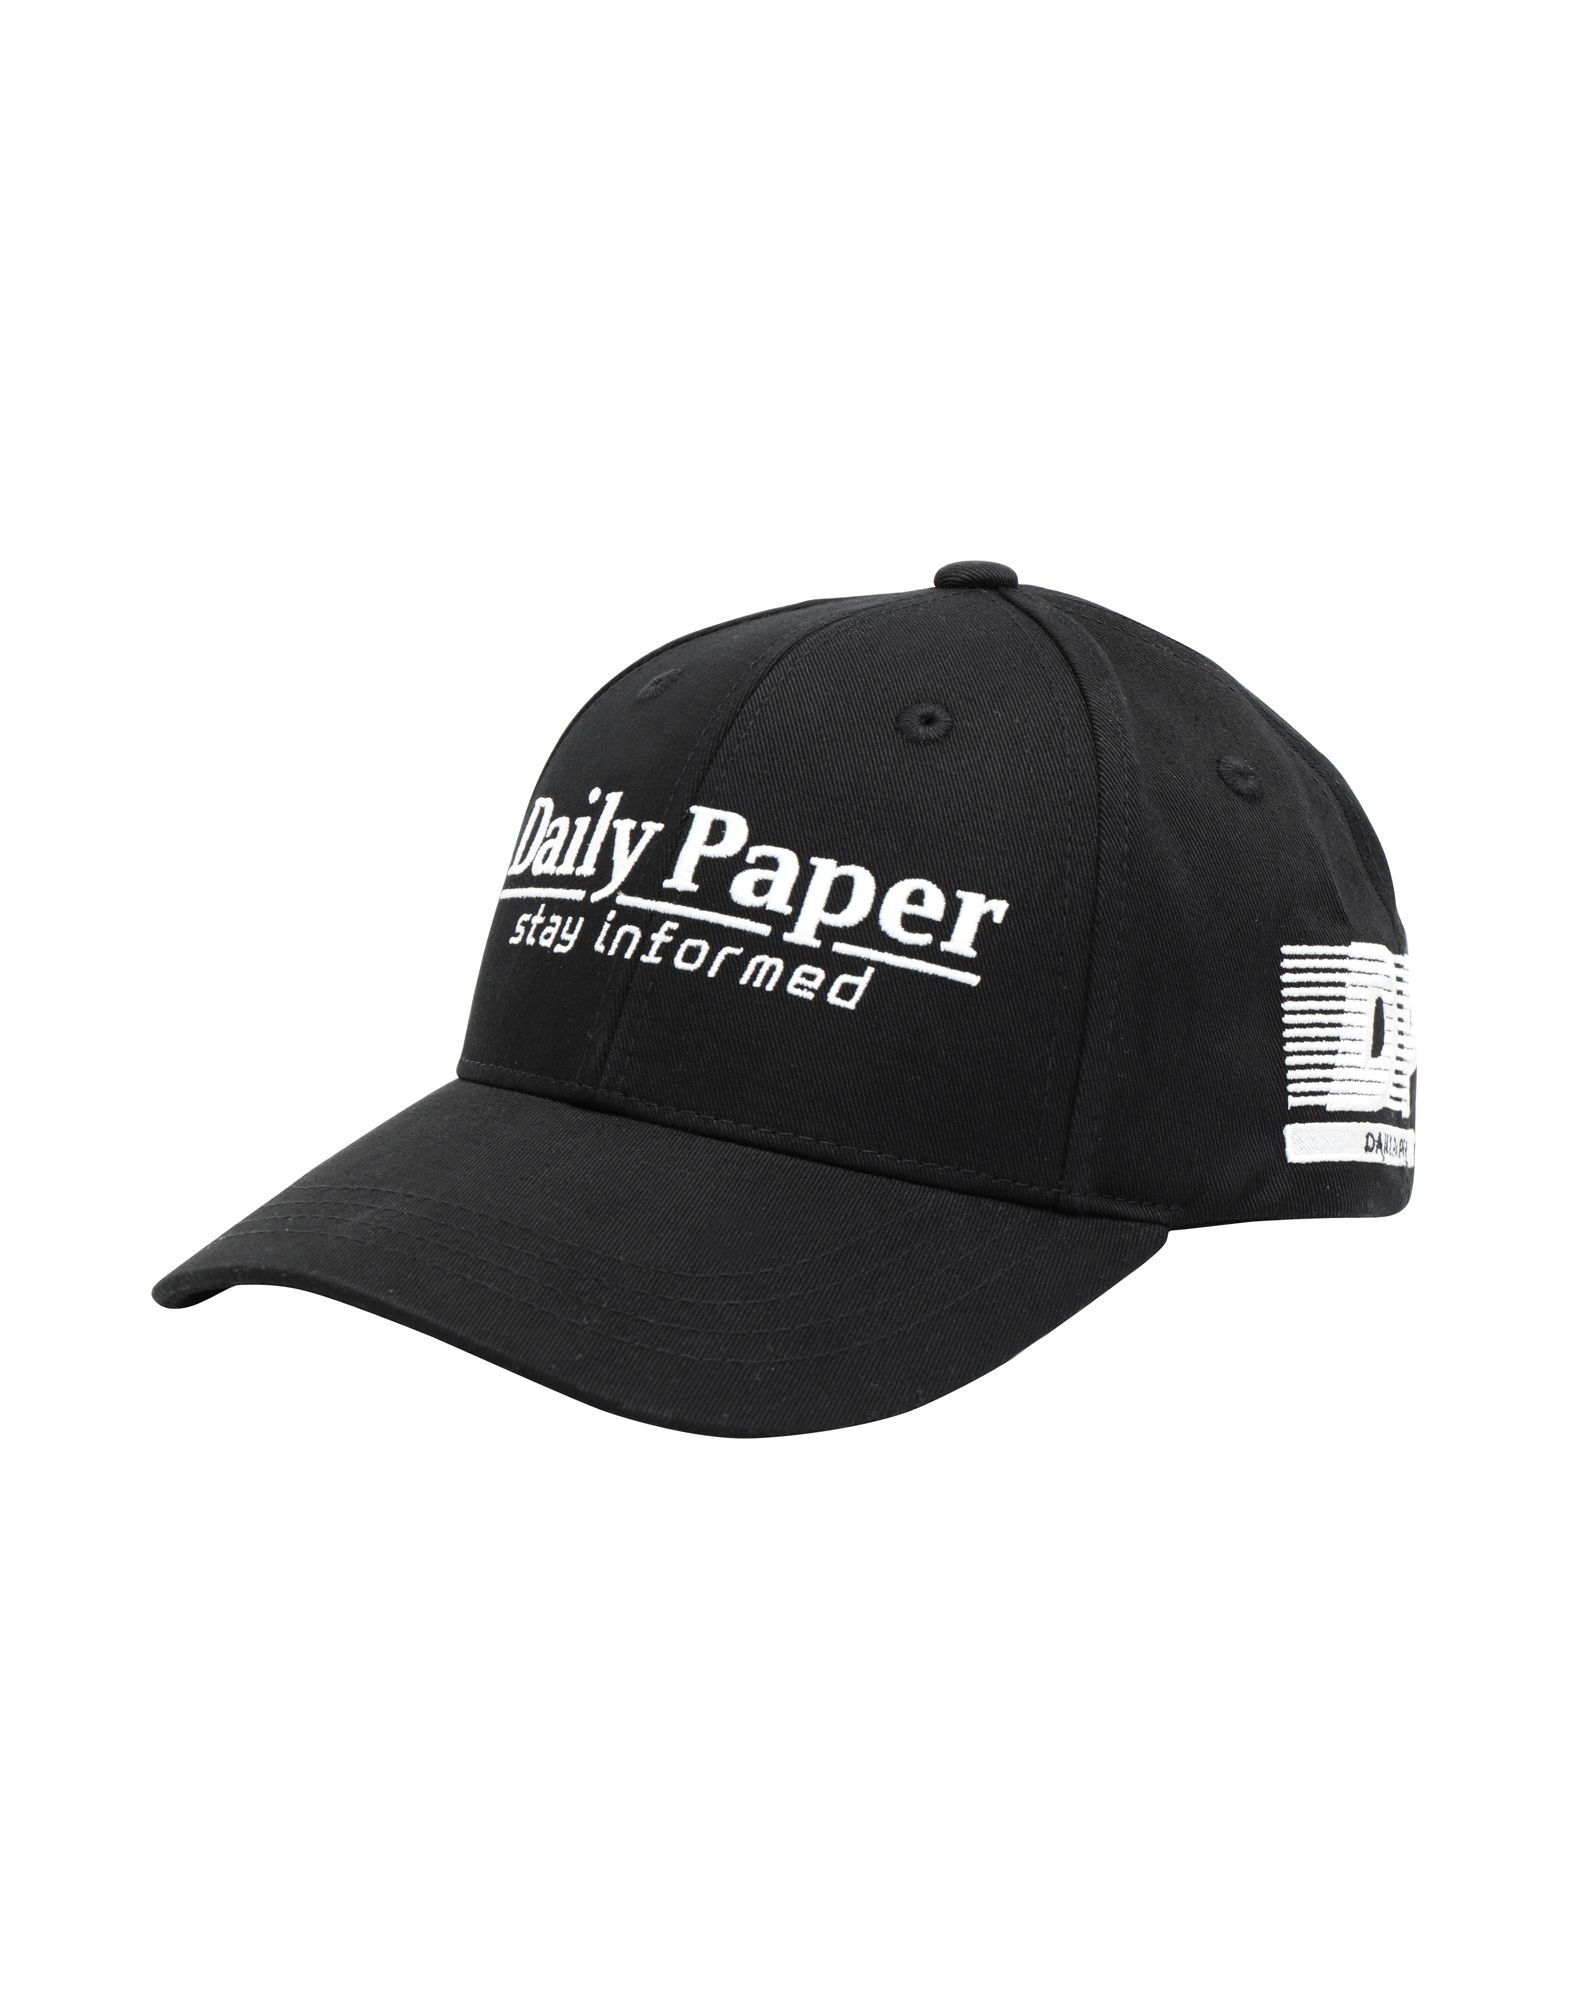 DAILY PAPER Hats in Black